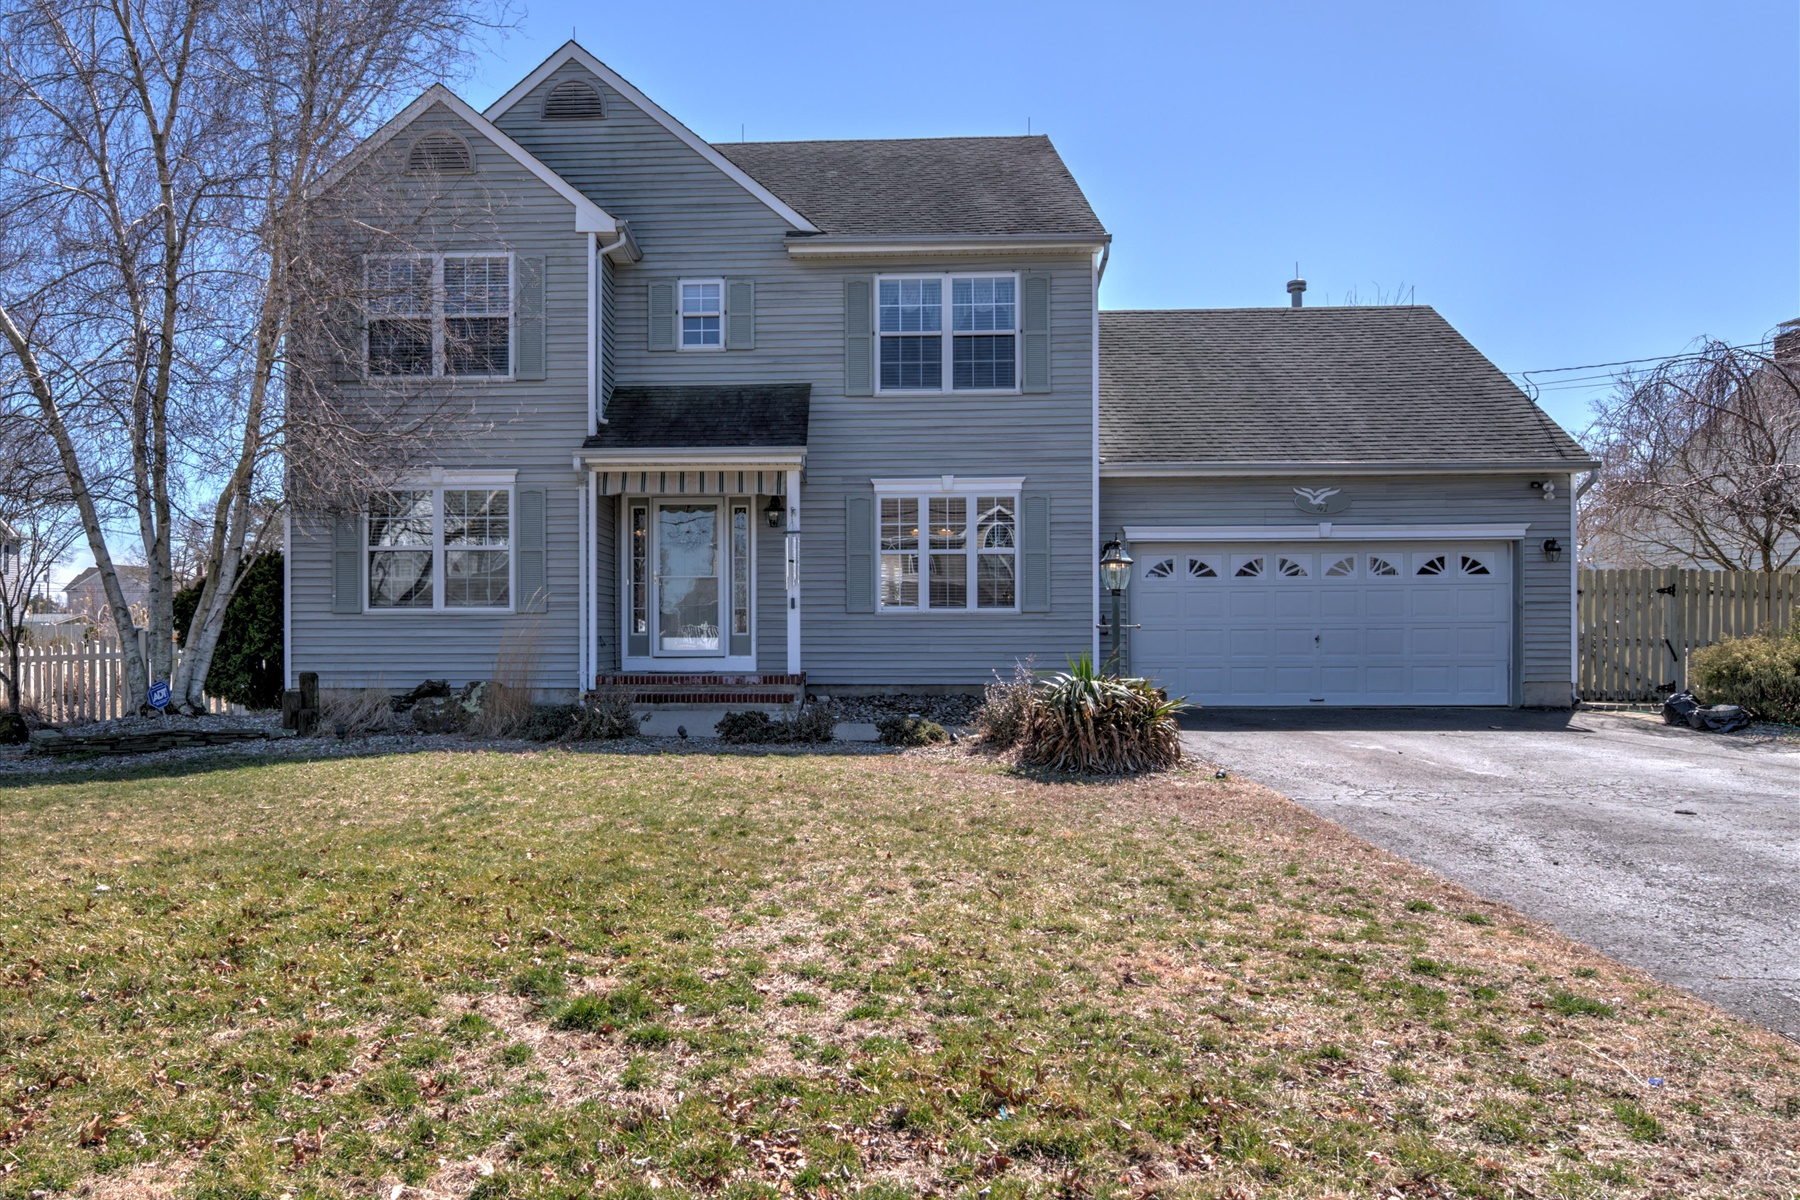 Single Family Homes for Sale at 41 Bay Harbor Boulevard Brick, New Jersey 08723 United States